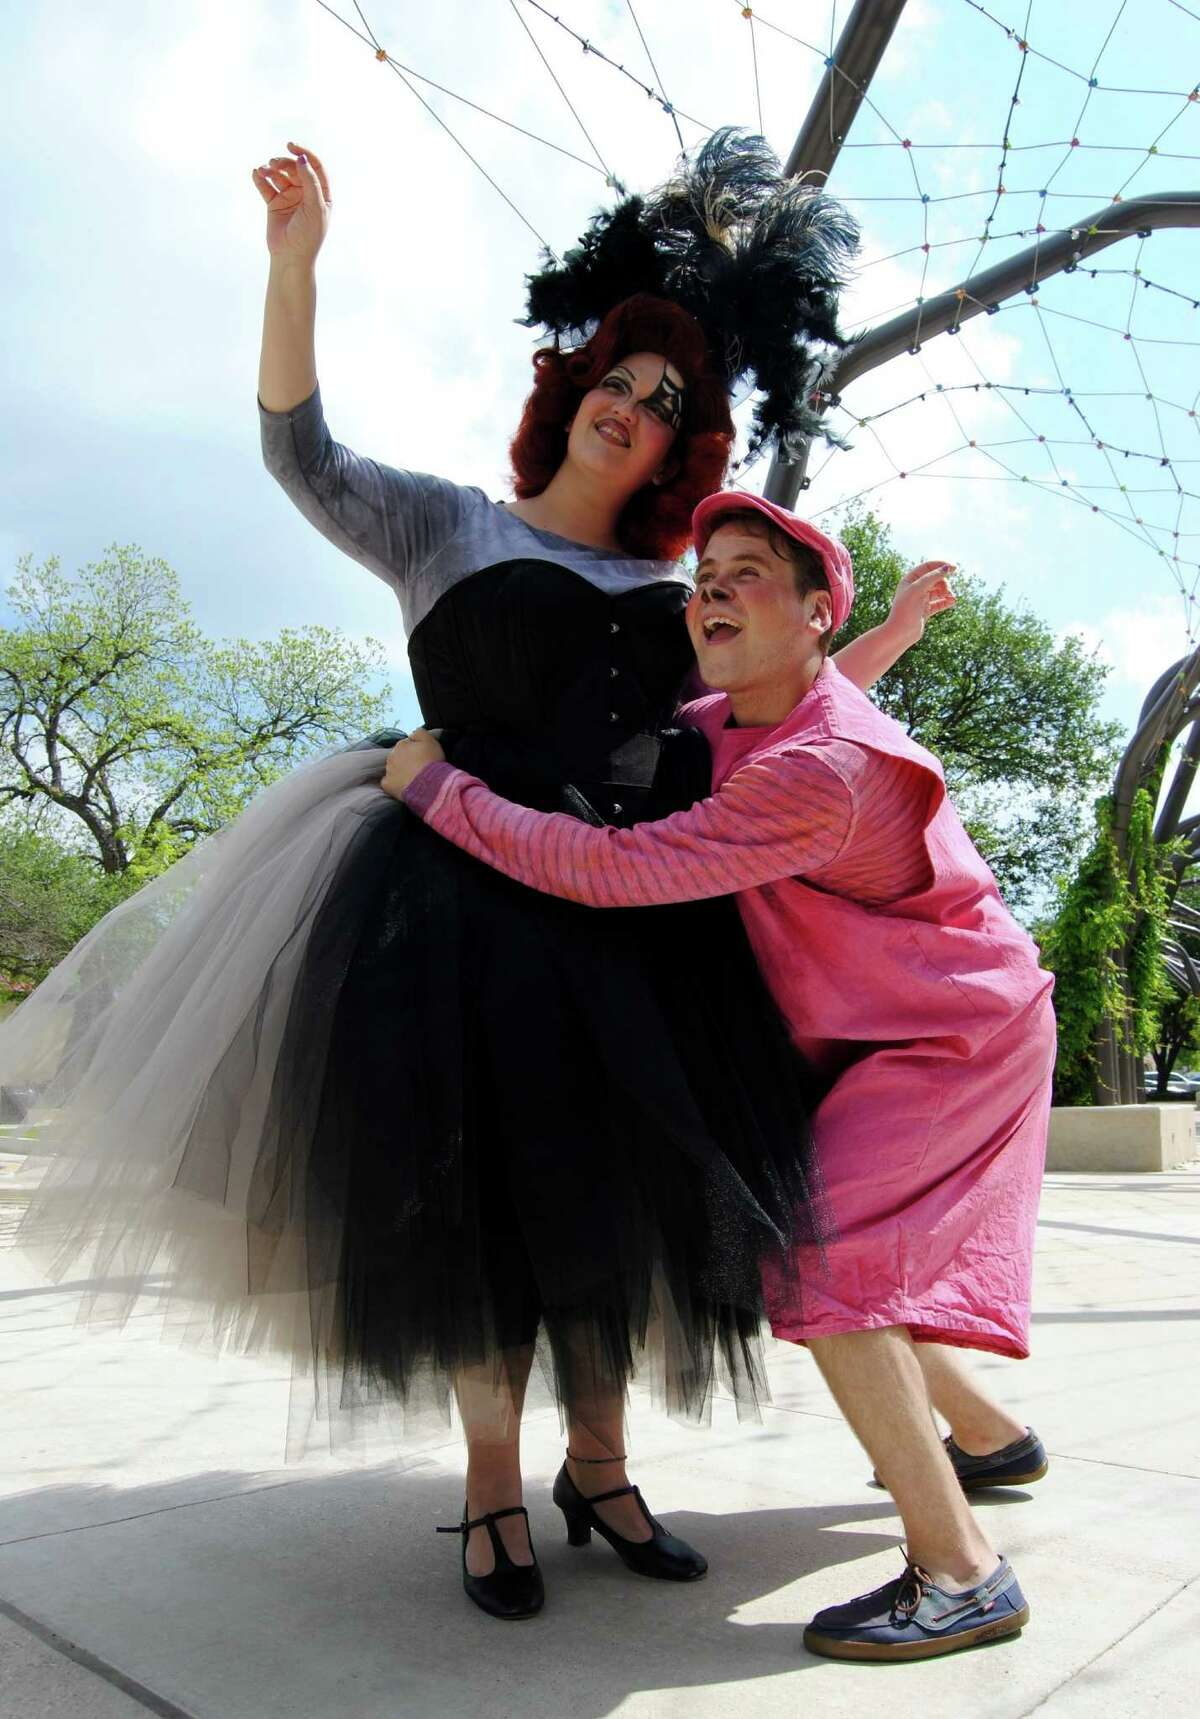 """Ariel Rosen plays Charlotte and Cody Asher plays Wilbur in Magik Theater's staging of """"Charlotte's Web."""""""